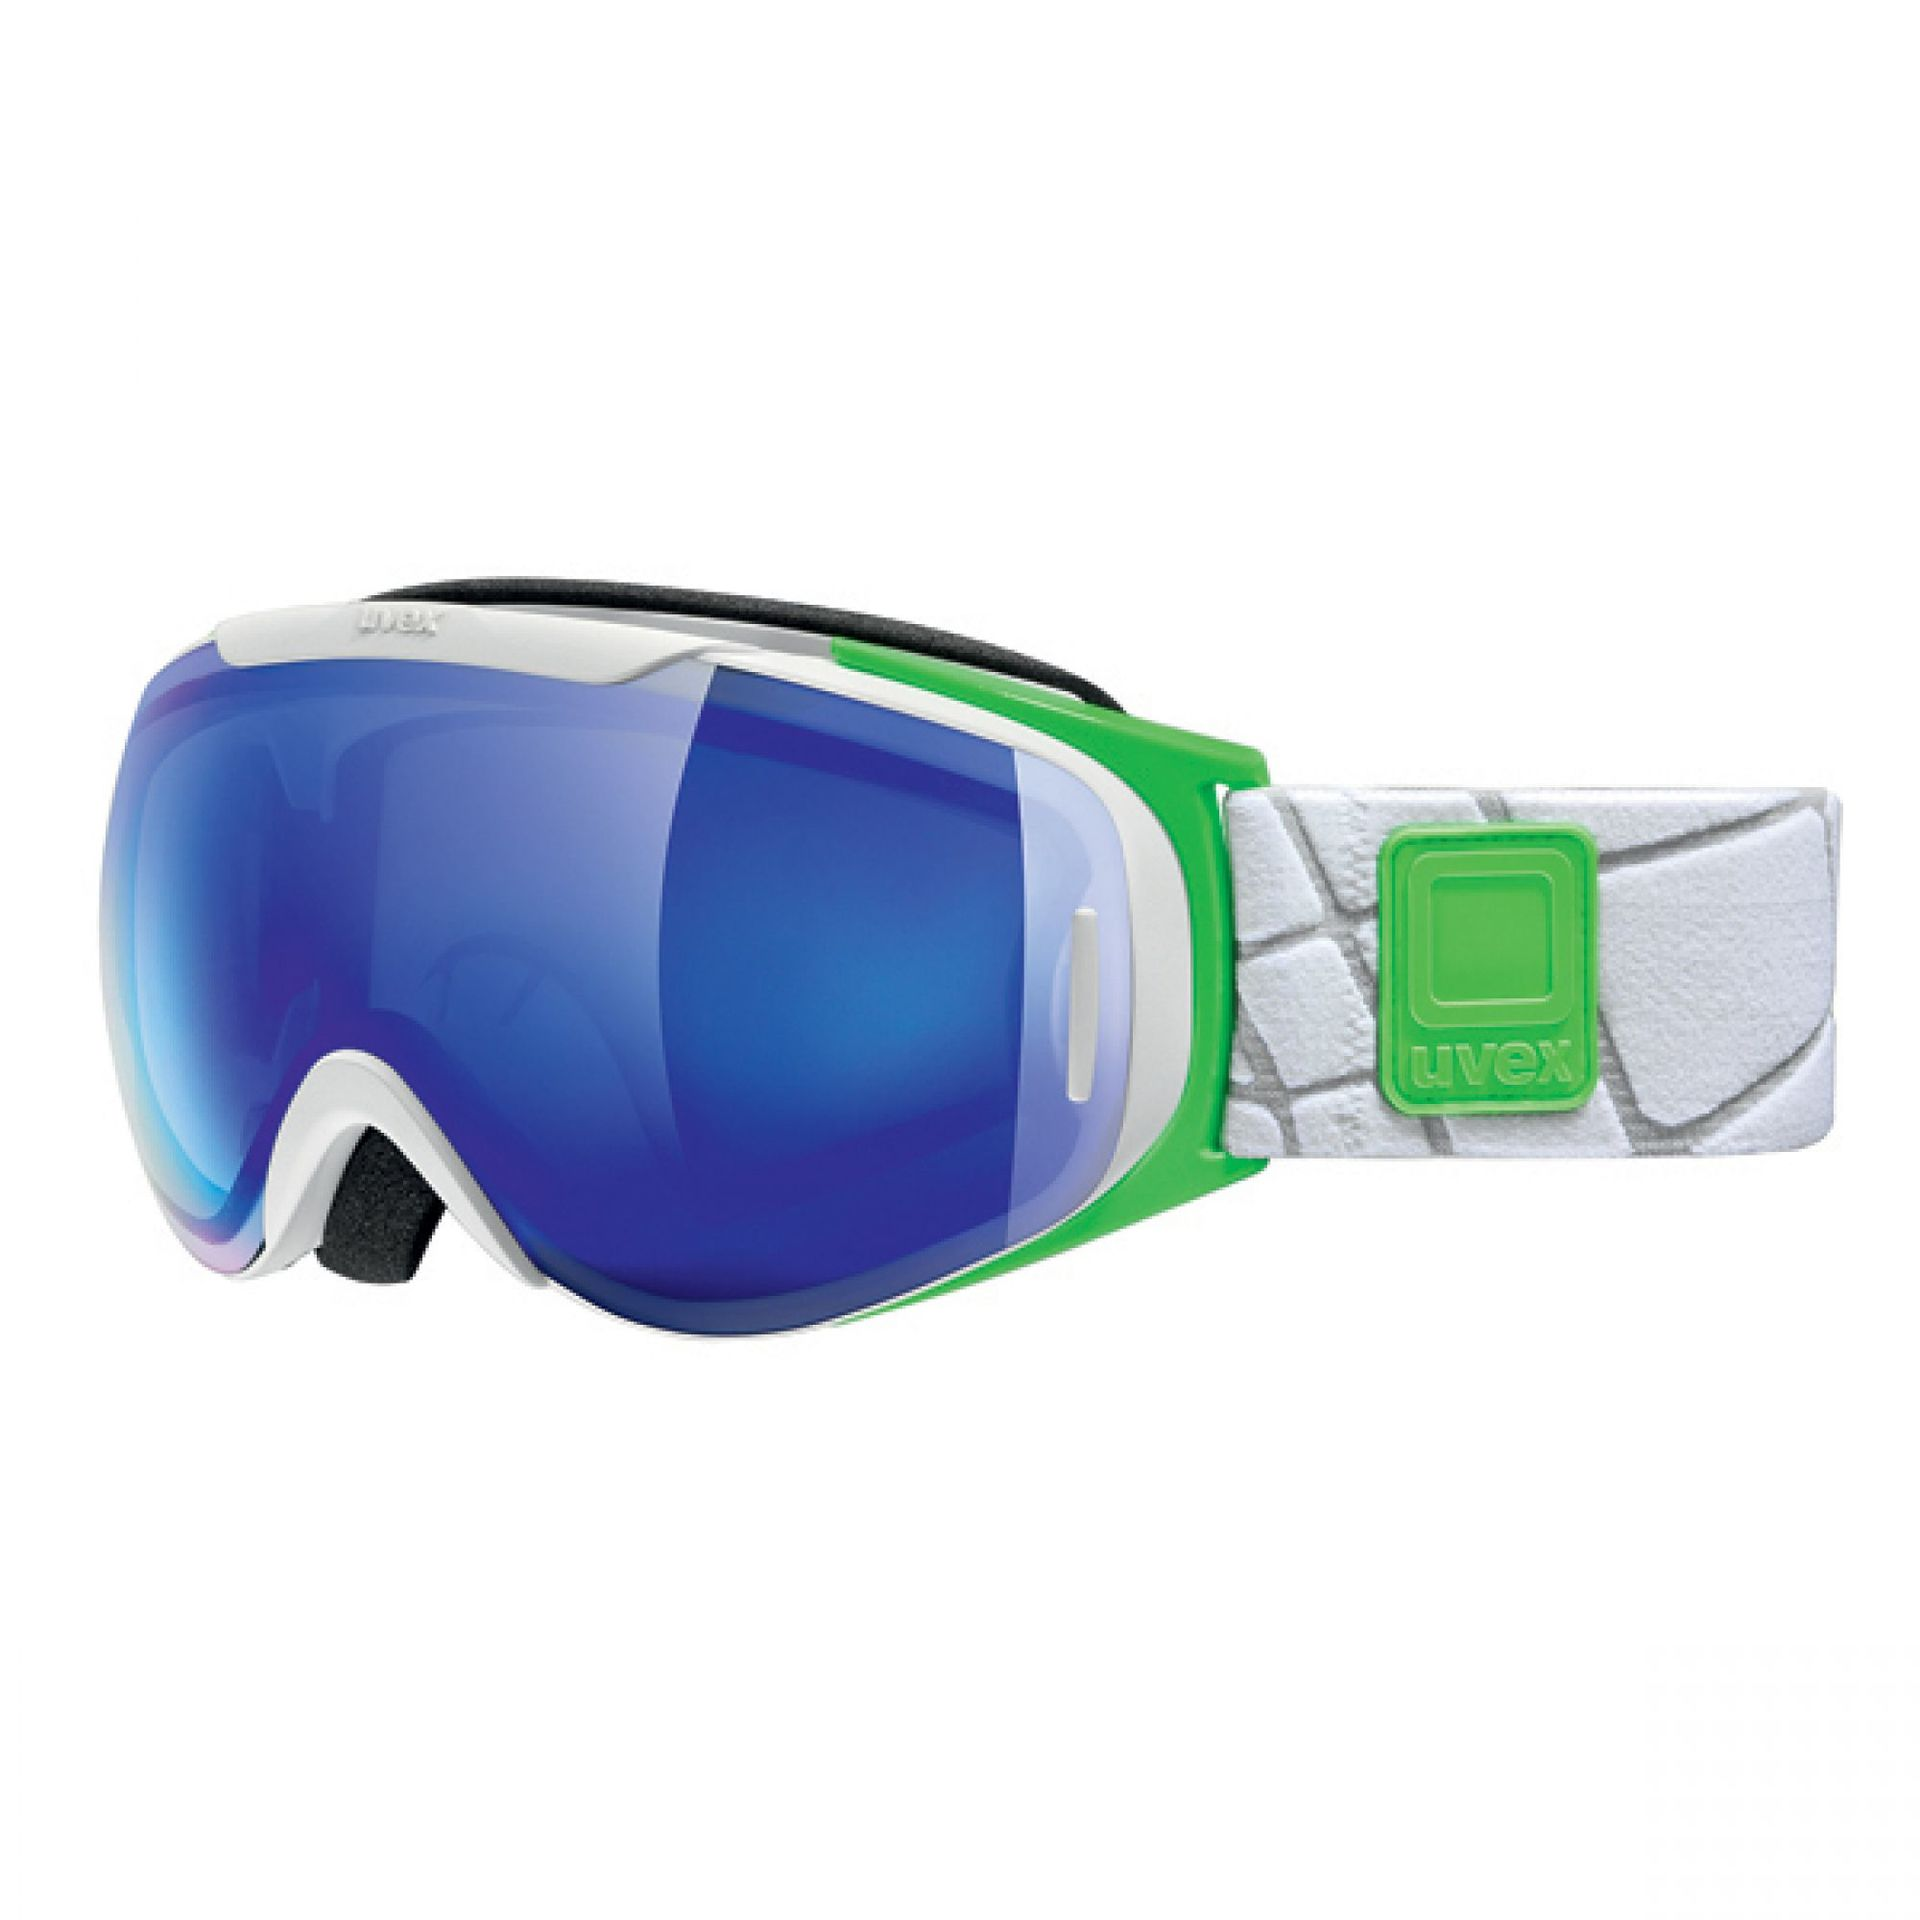 GOGLE UVEX G.GL 9 RECON WHITE GREEN LITEMIRROR BLUE CLEAR S2